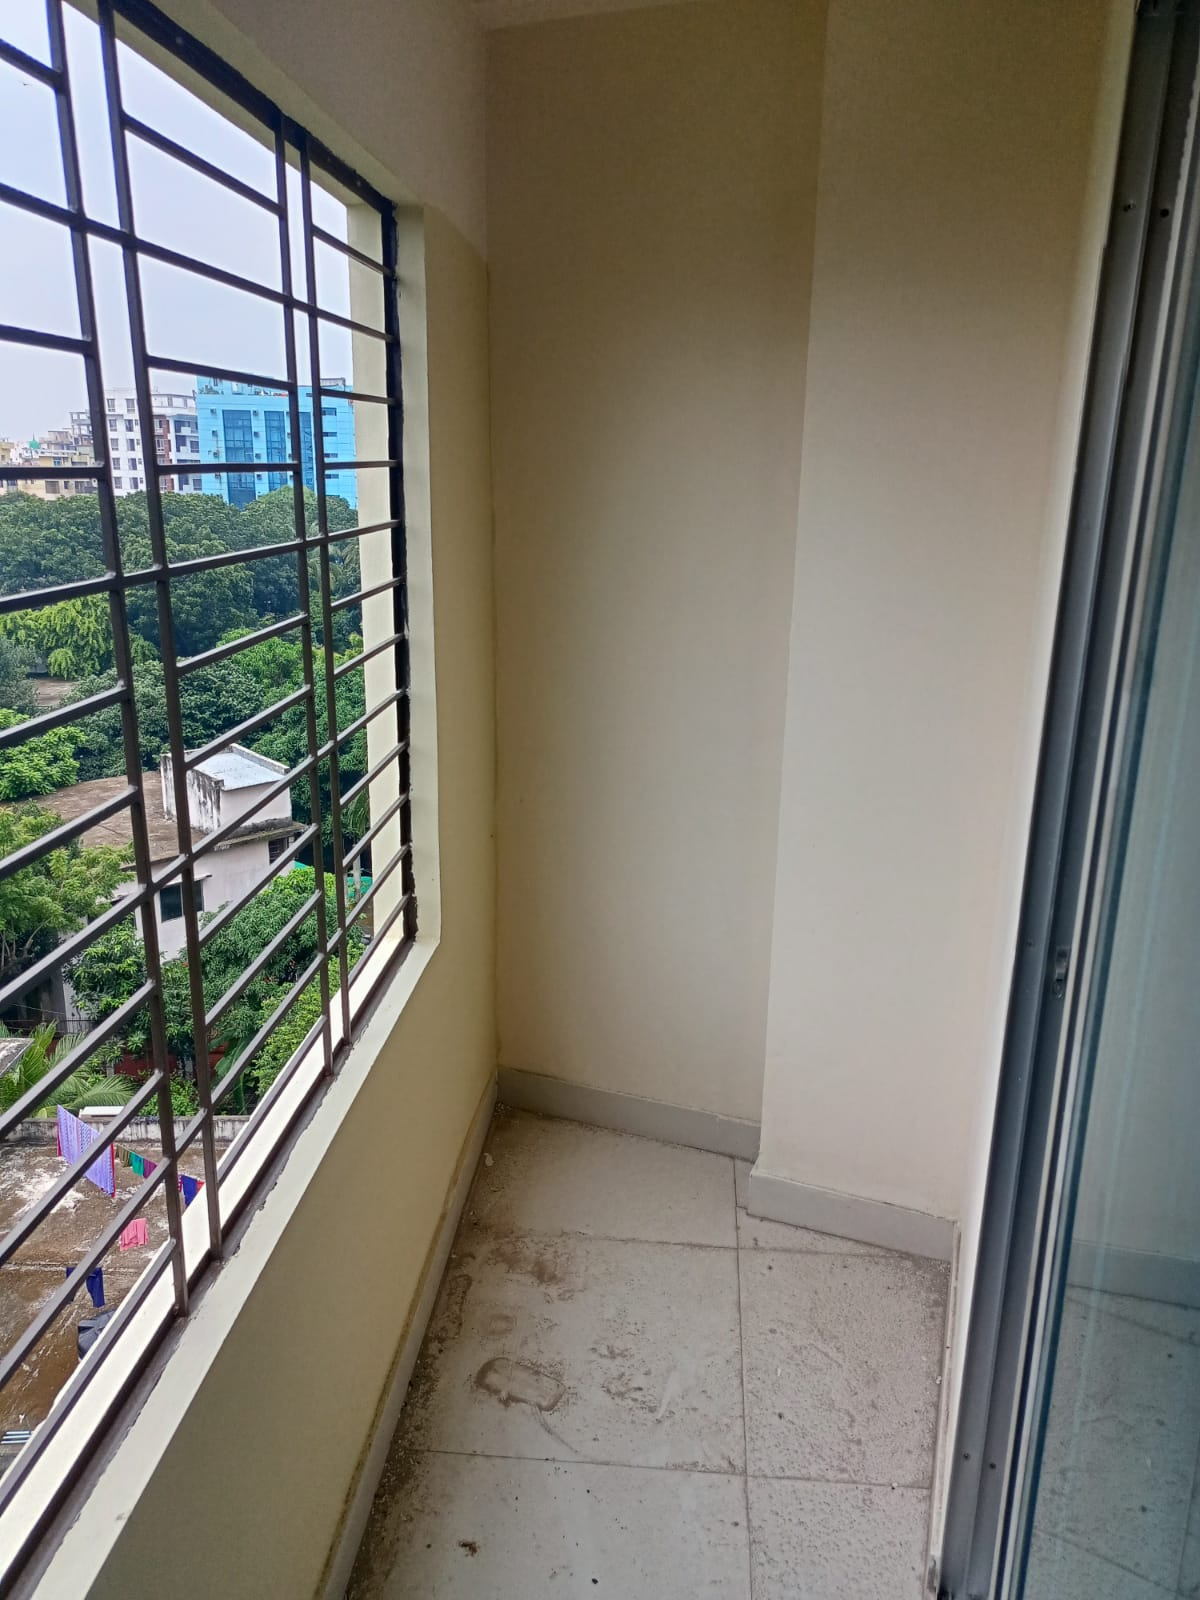 1060-sft-apartment-for-sale-at-jafrabad-dhanmondi-6th-floor-187340